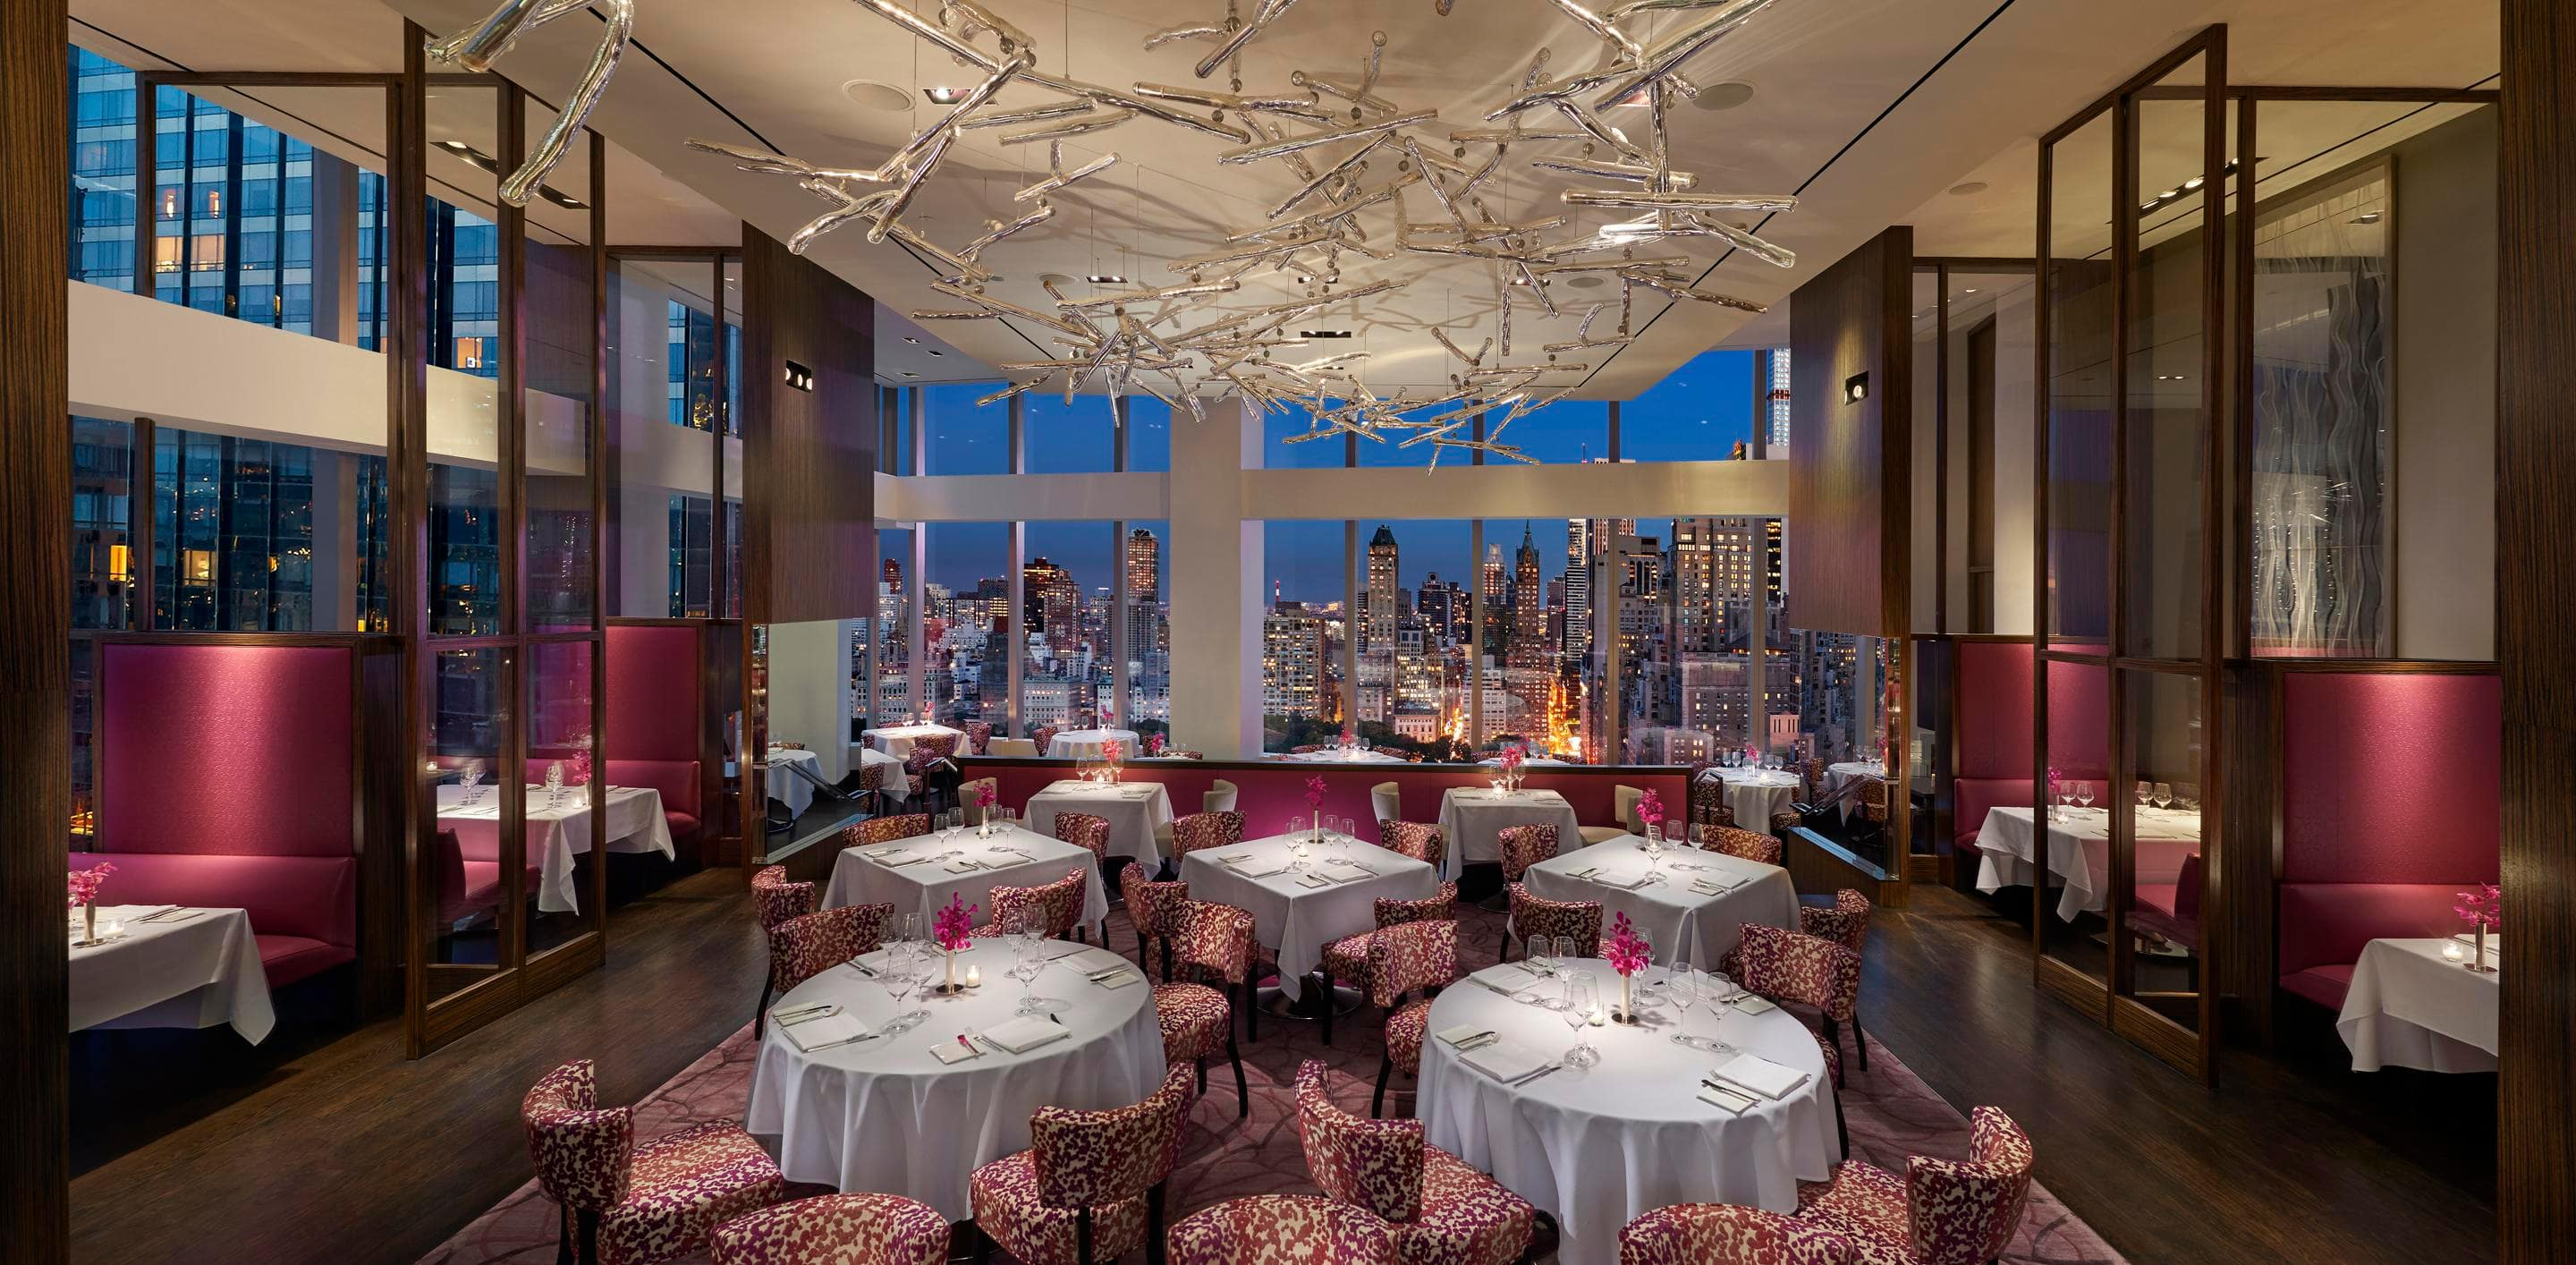 Fancy Restaurant Background asiate - restaurants in manhattan | mandarin oriental, new york